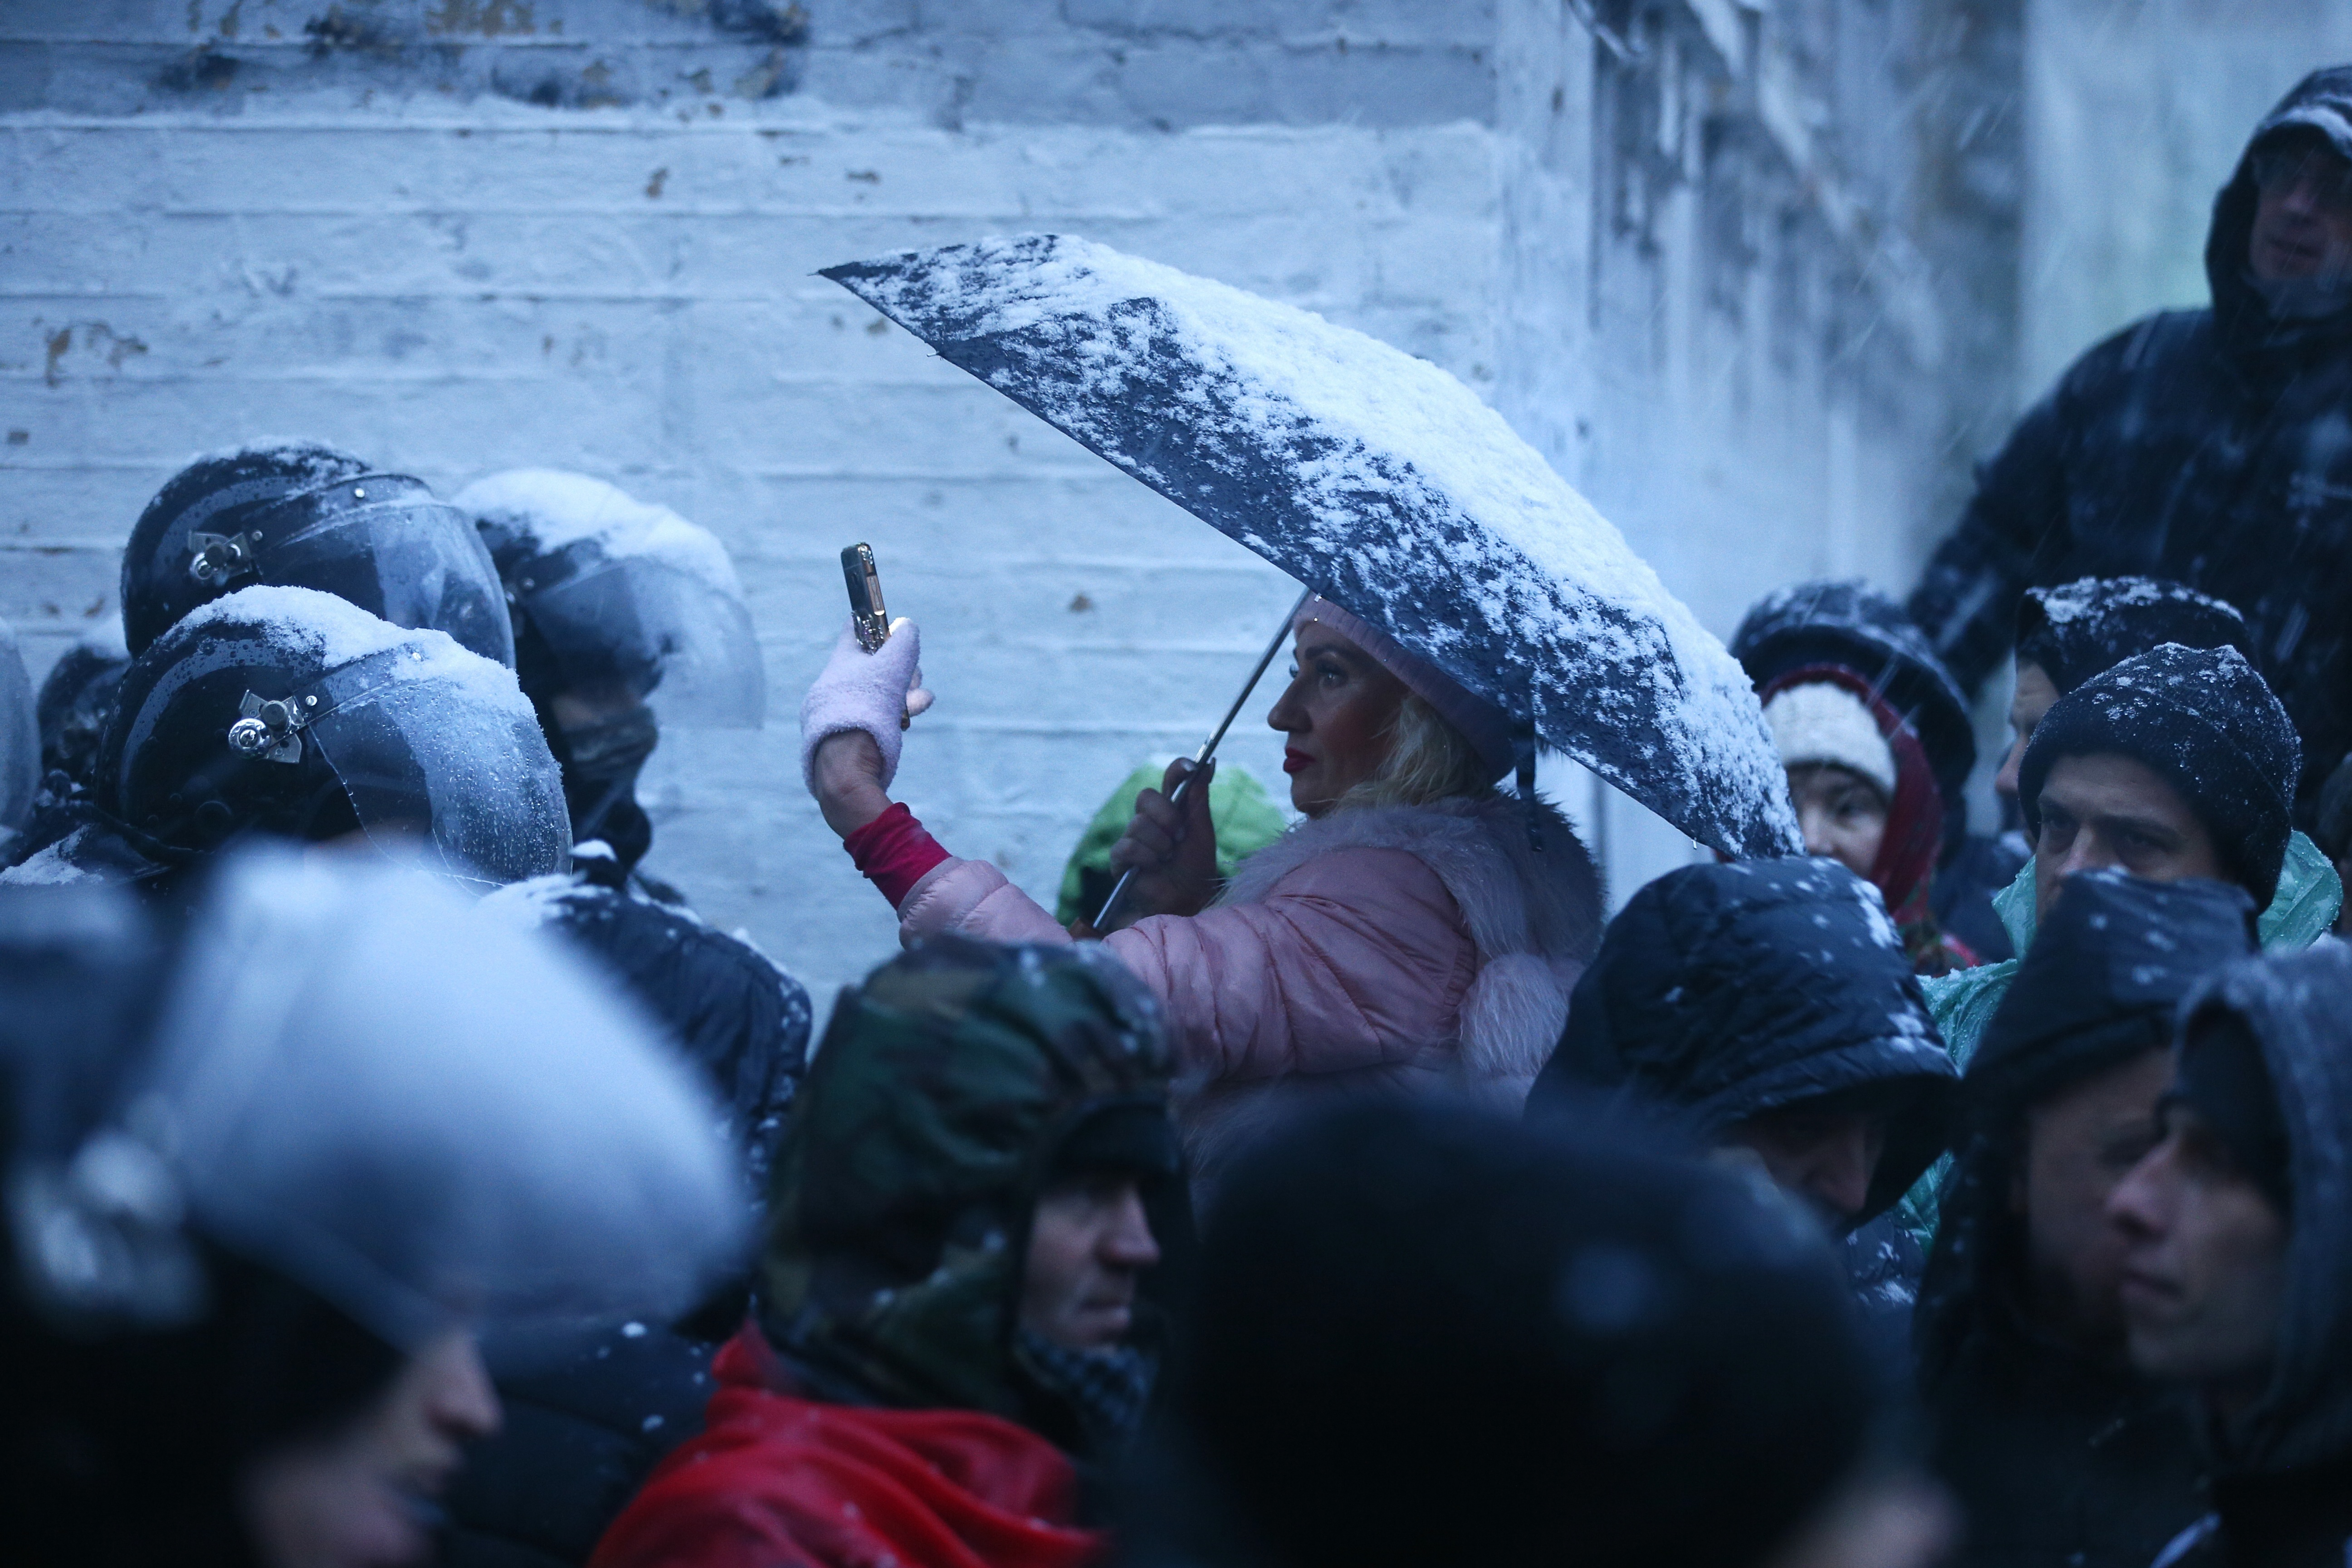 woman under a snowy umbrella takes a photo with her cell phone of a police blockade